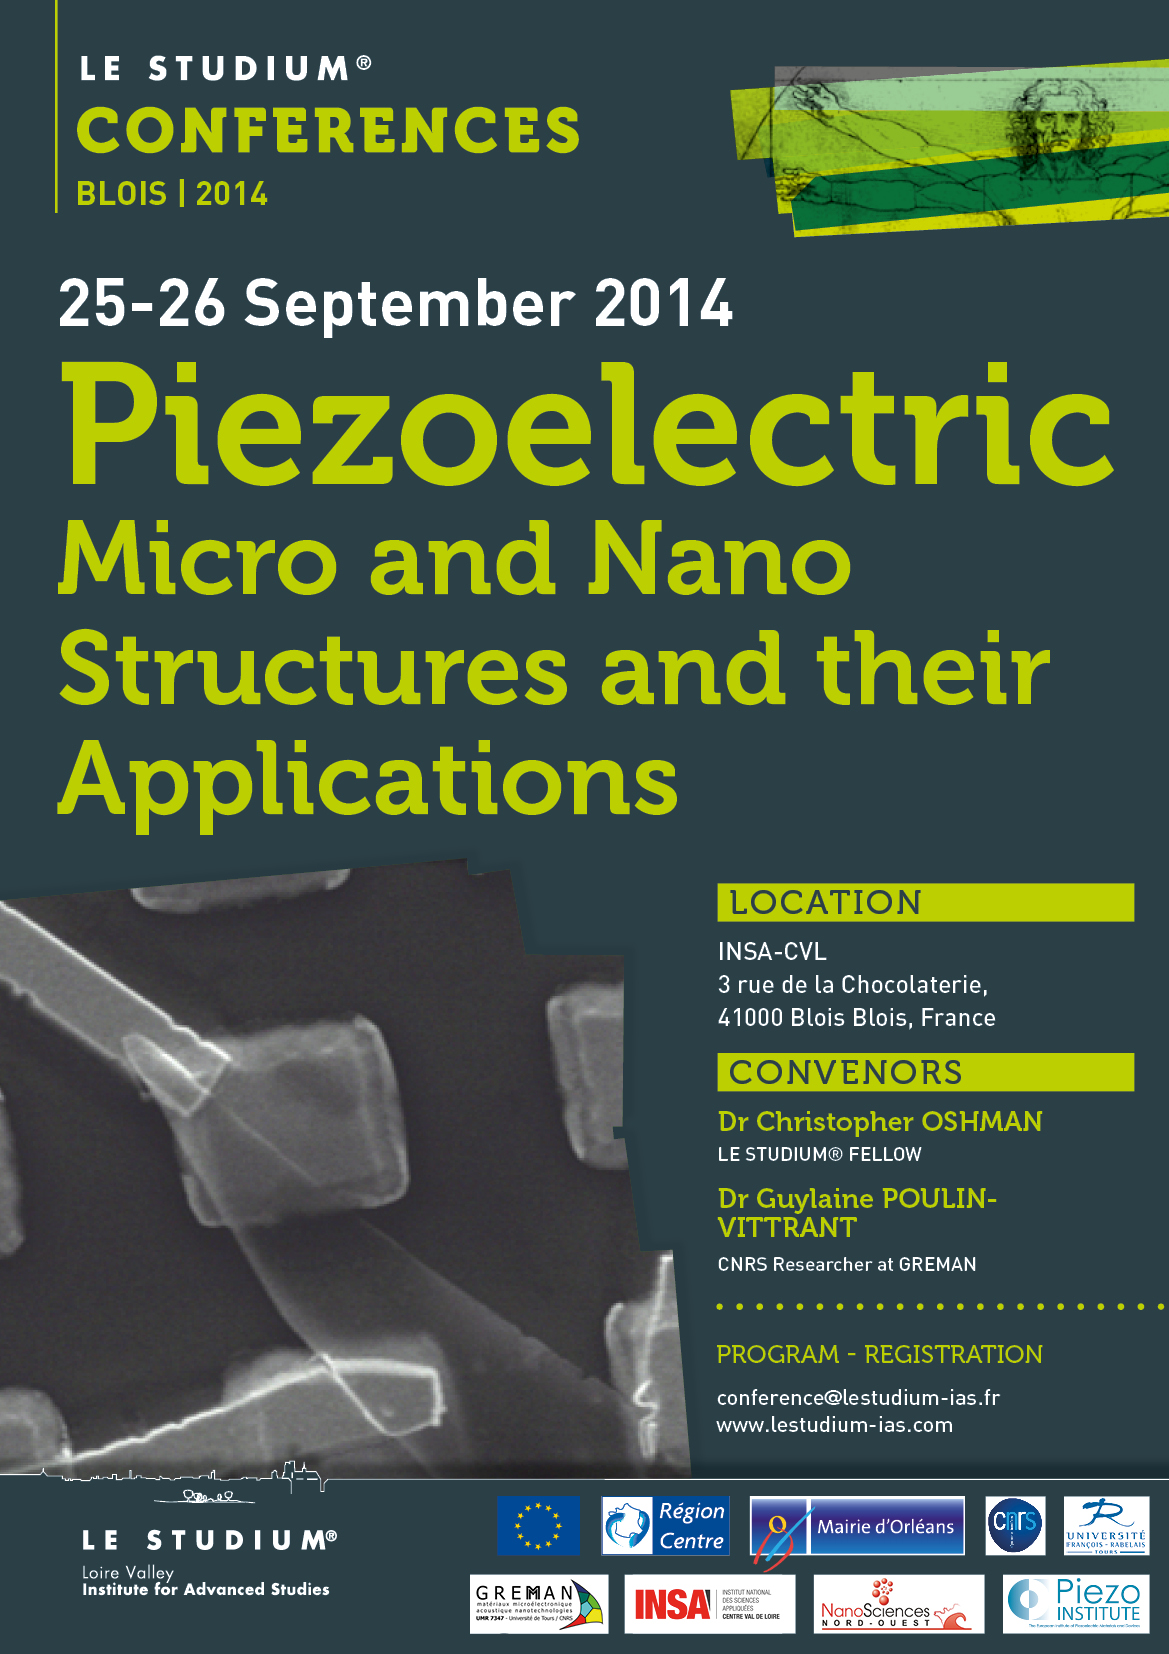 Piezoelectric Micro and Nano Structures and their Applications | LE